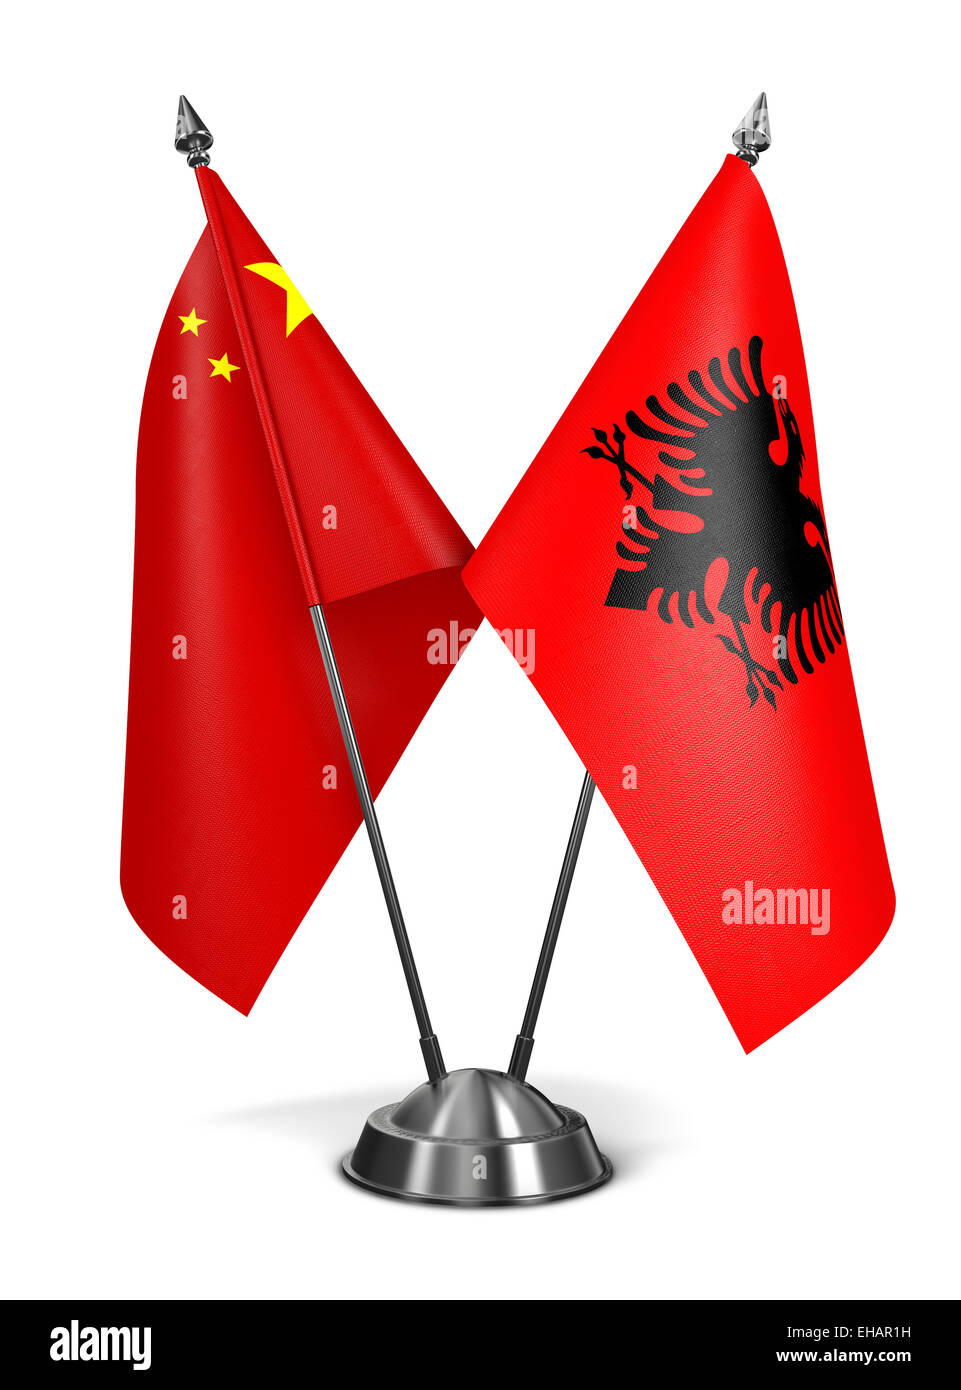 China and Albania - Miniature Flags Isolated on White Background. - Stock Image